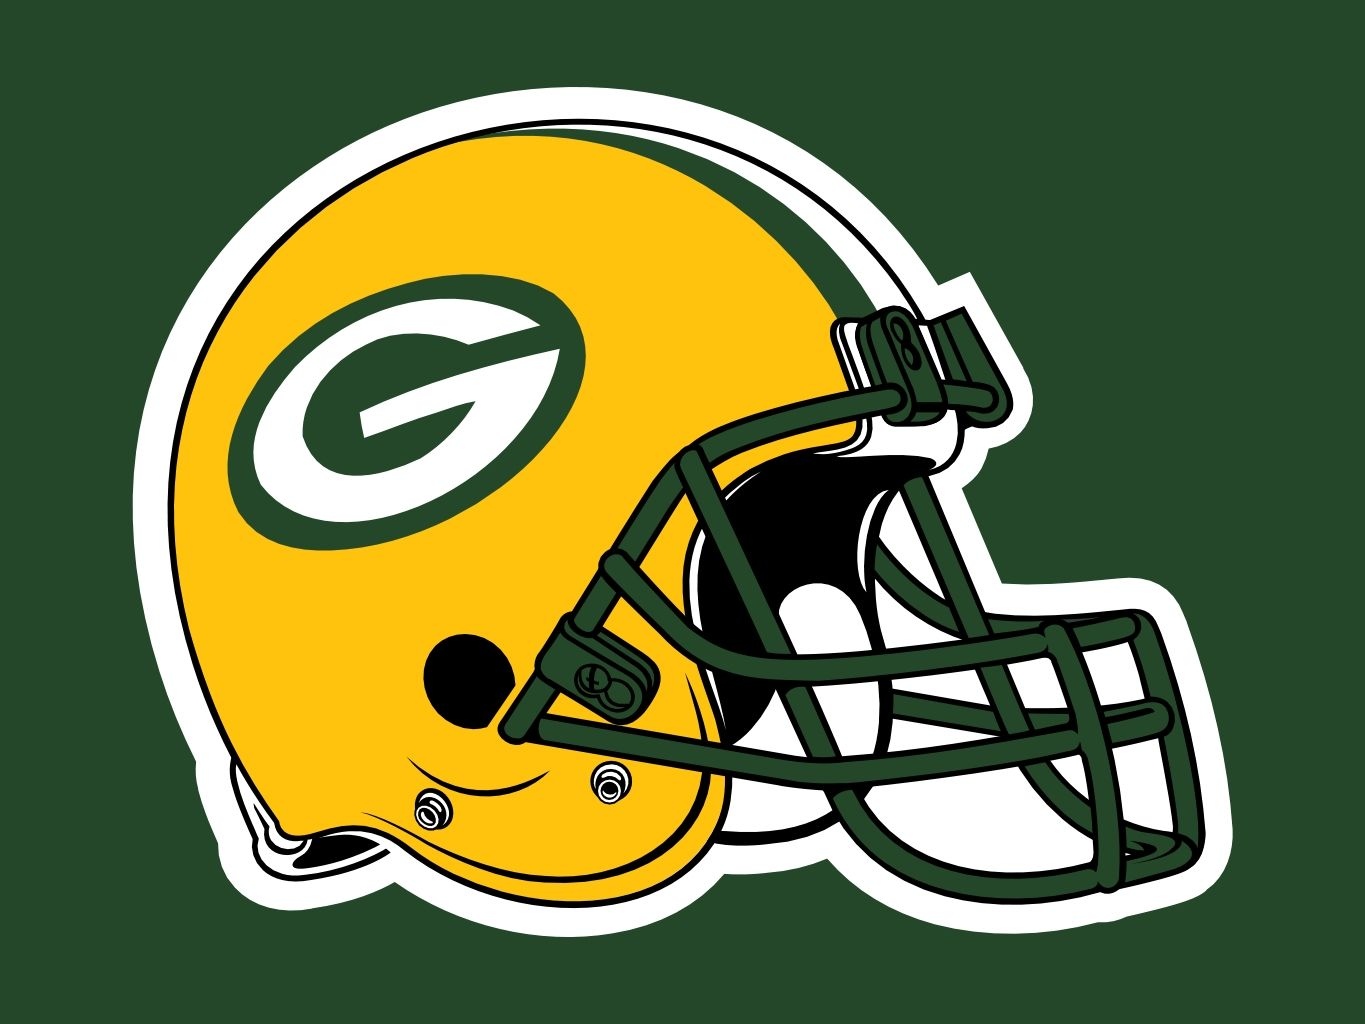 Green Bay Packers Green Bay Packers Helmet Nfl Flag Green Bay Packers